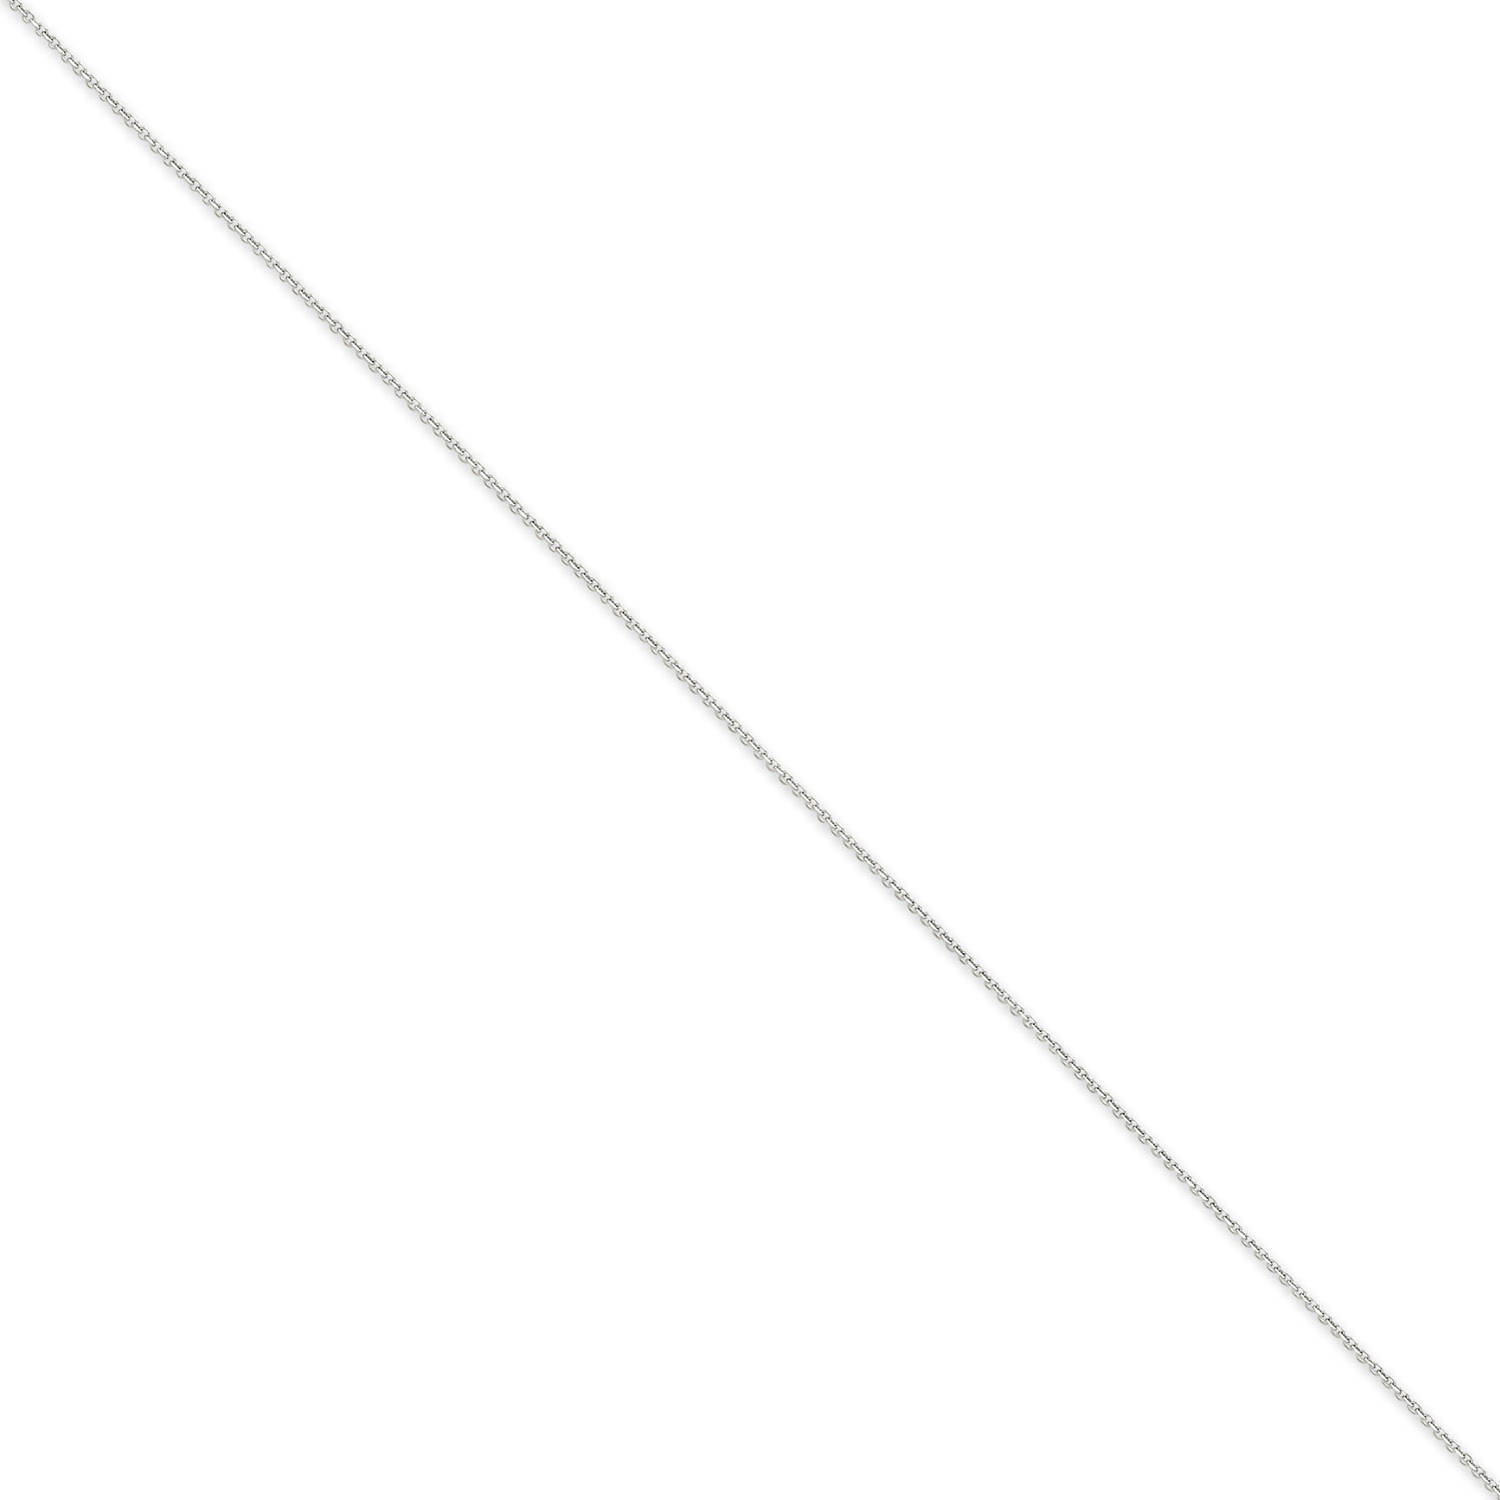 14kt White Gold .75mm Diamond-Cut Cable Chain by Generic